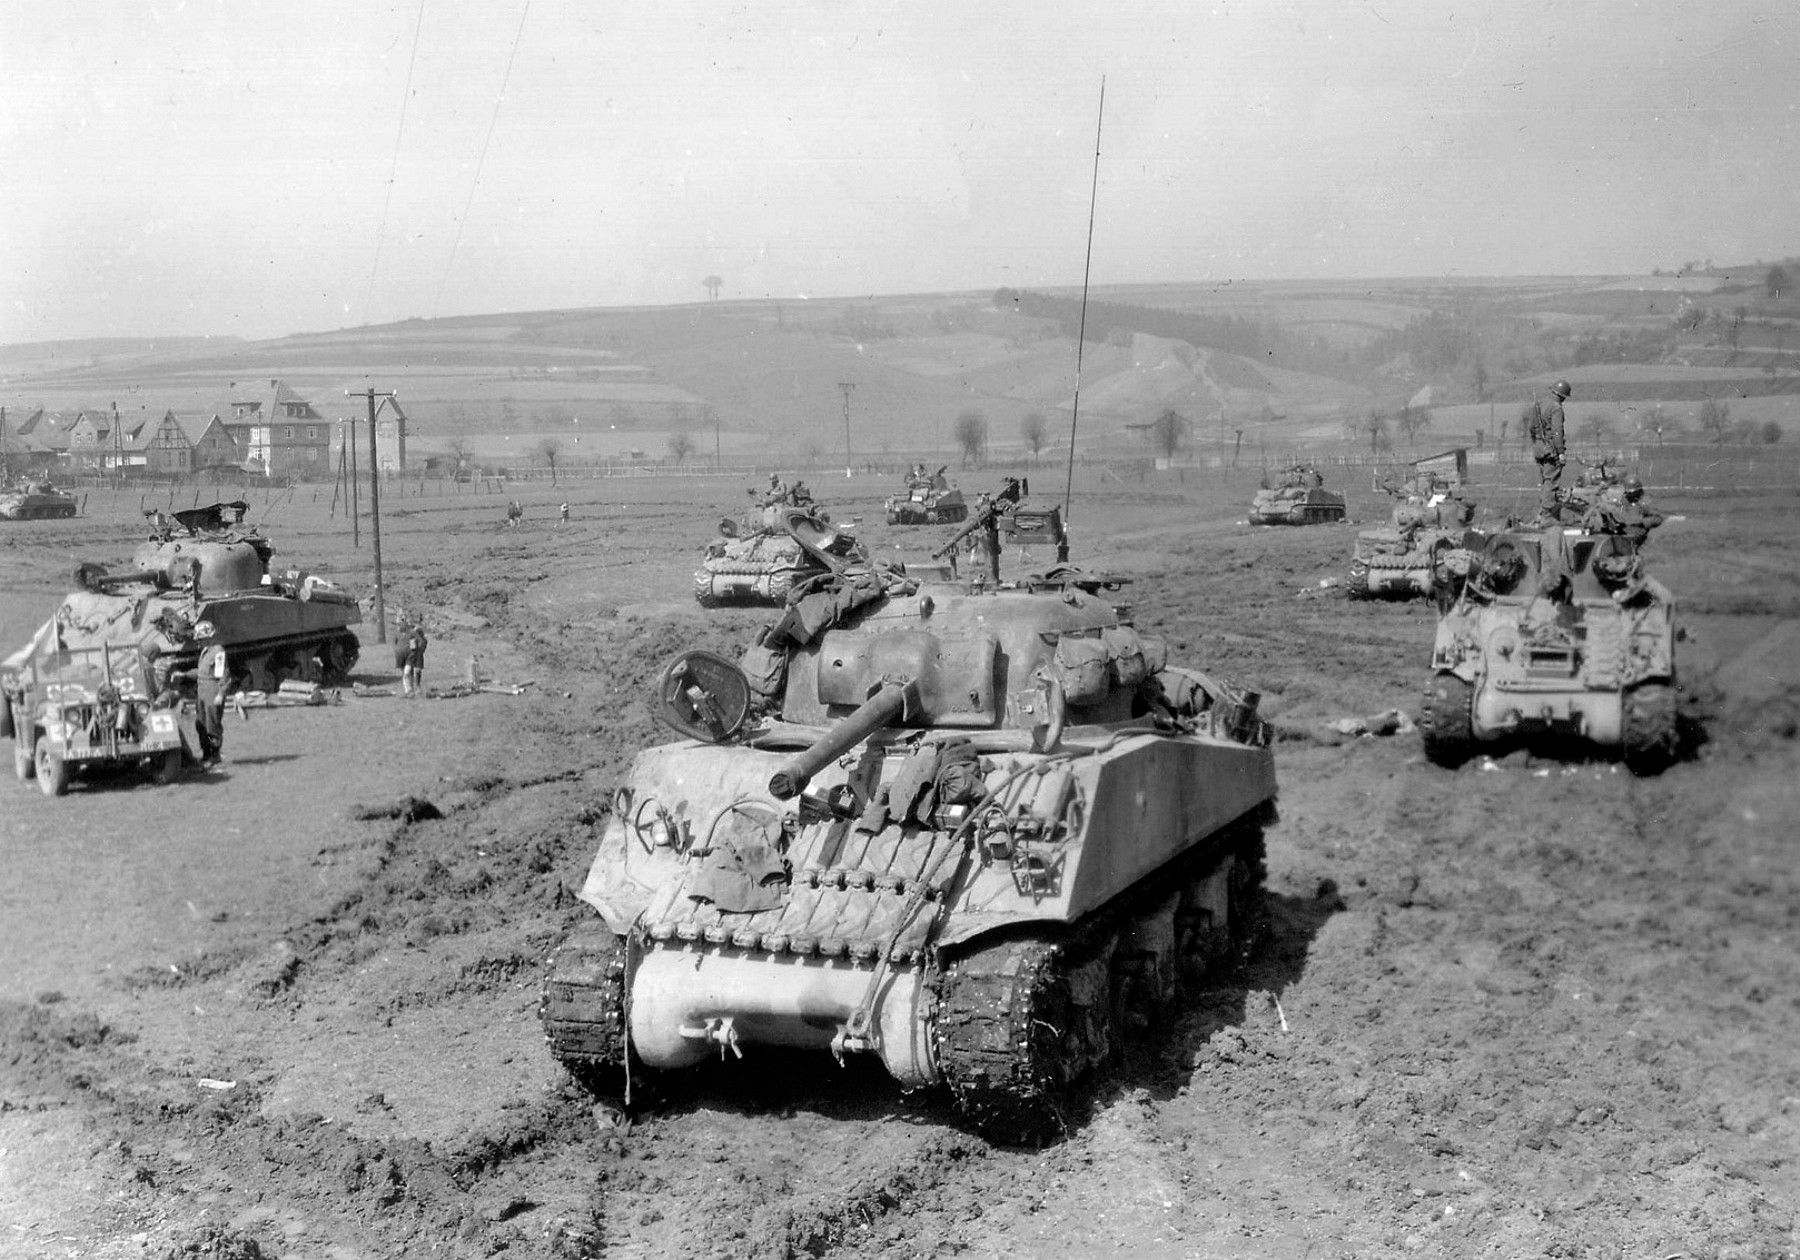 US 9th Armored Division, Westhousen, Germany, April 10, 1945